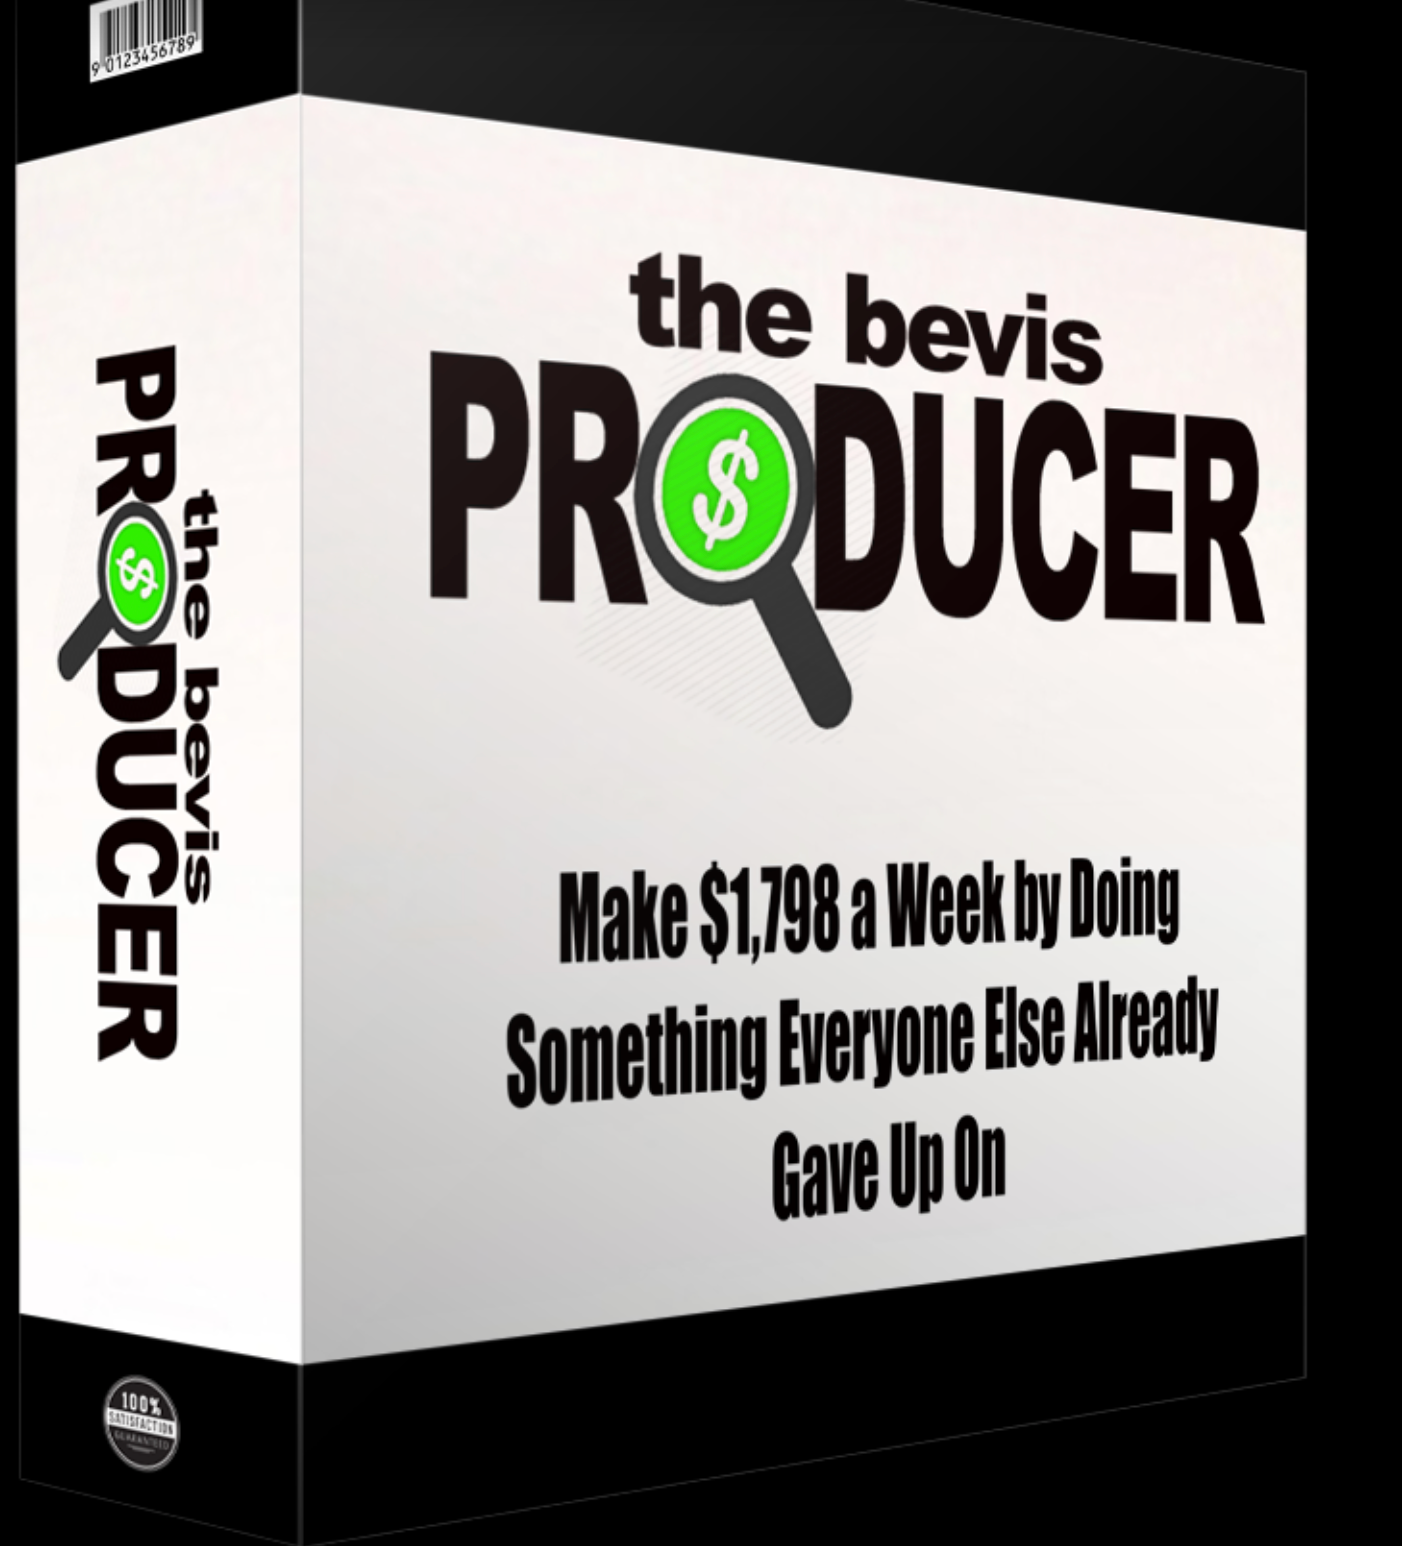 The Bevis Producer Review: Need To Know Details and Sneak Peek